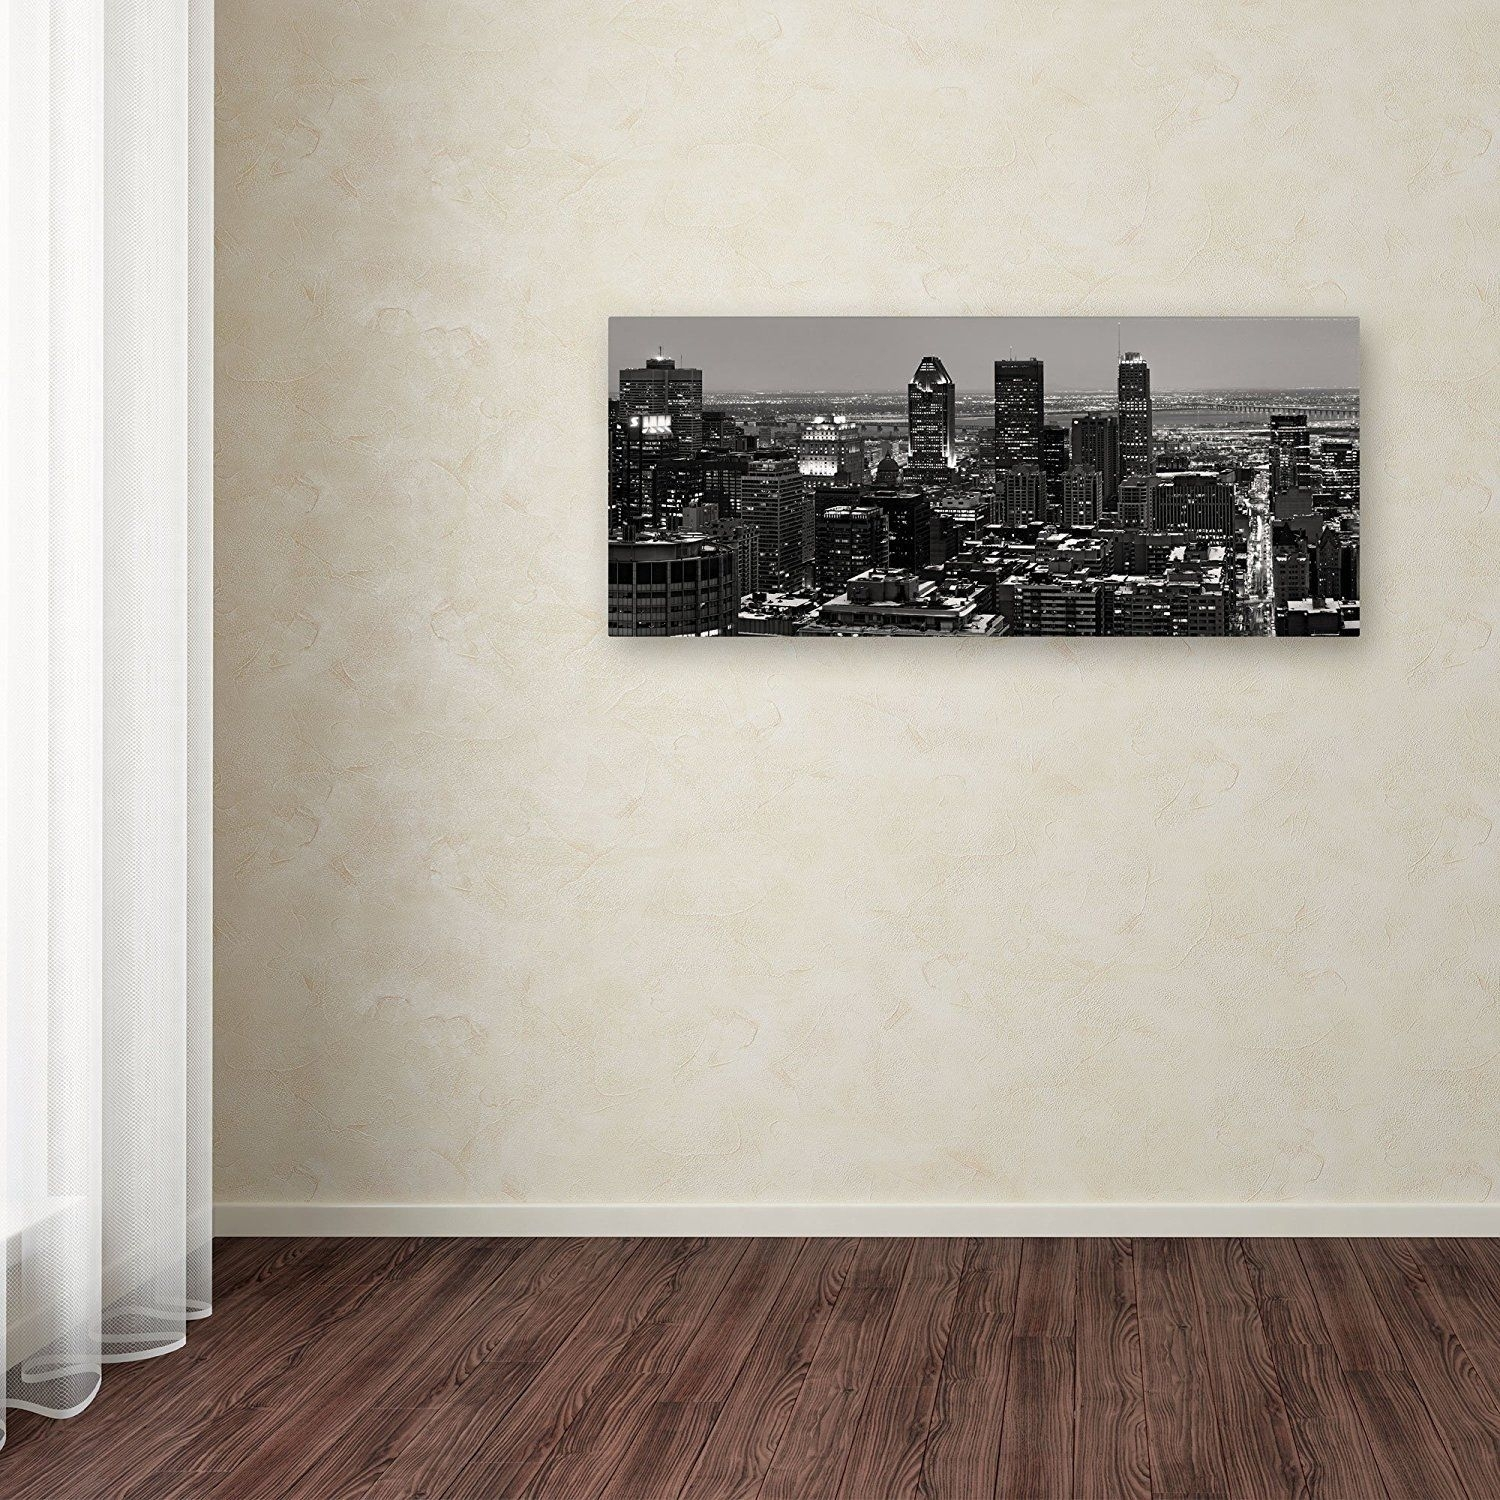 Pierre Leclerc 'montreal City' Canvas Wall Art 10 X 19 | Ebay With 2018 Montreal Canvas Wall Art (View 12 of 15)